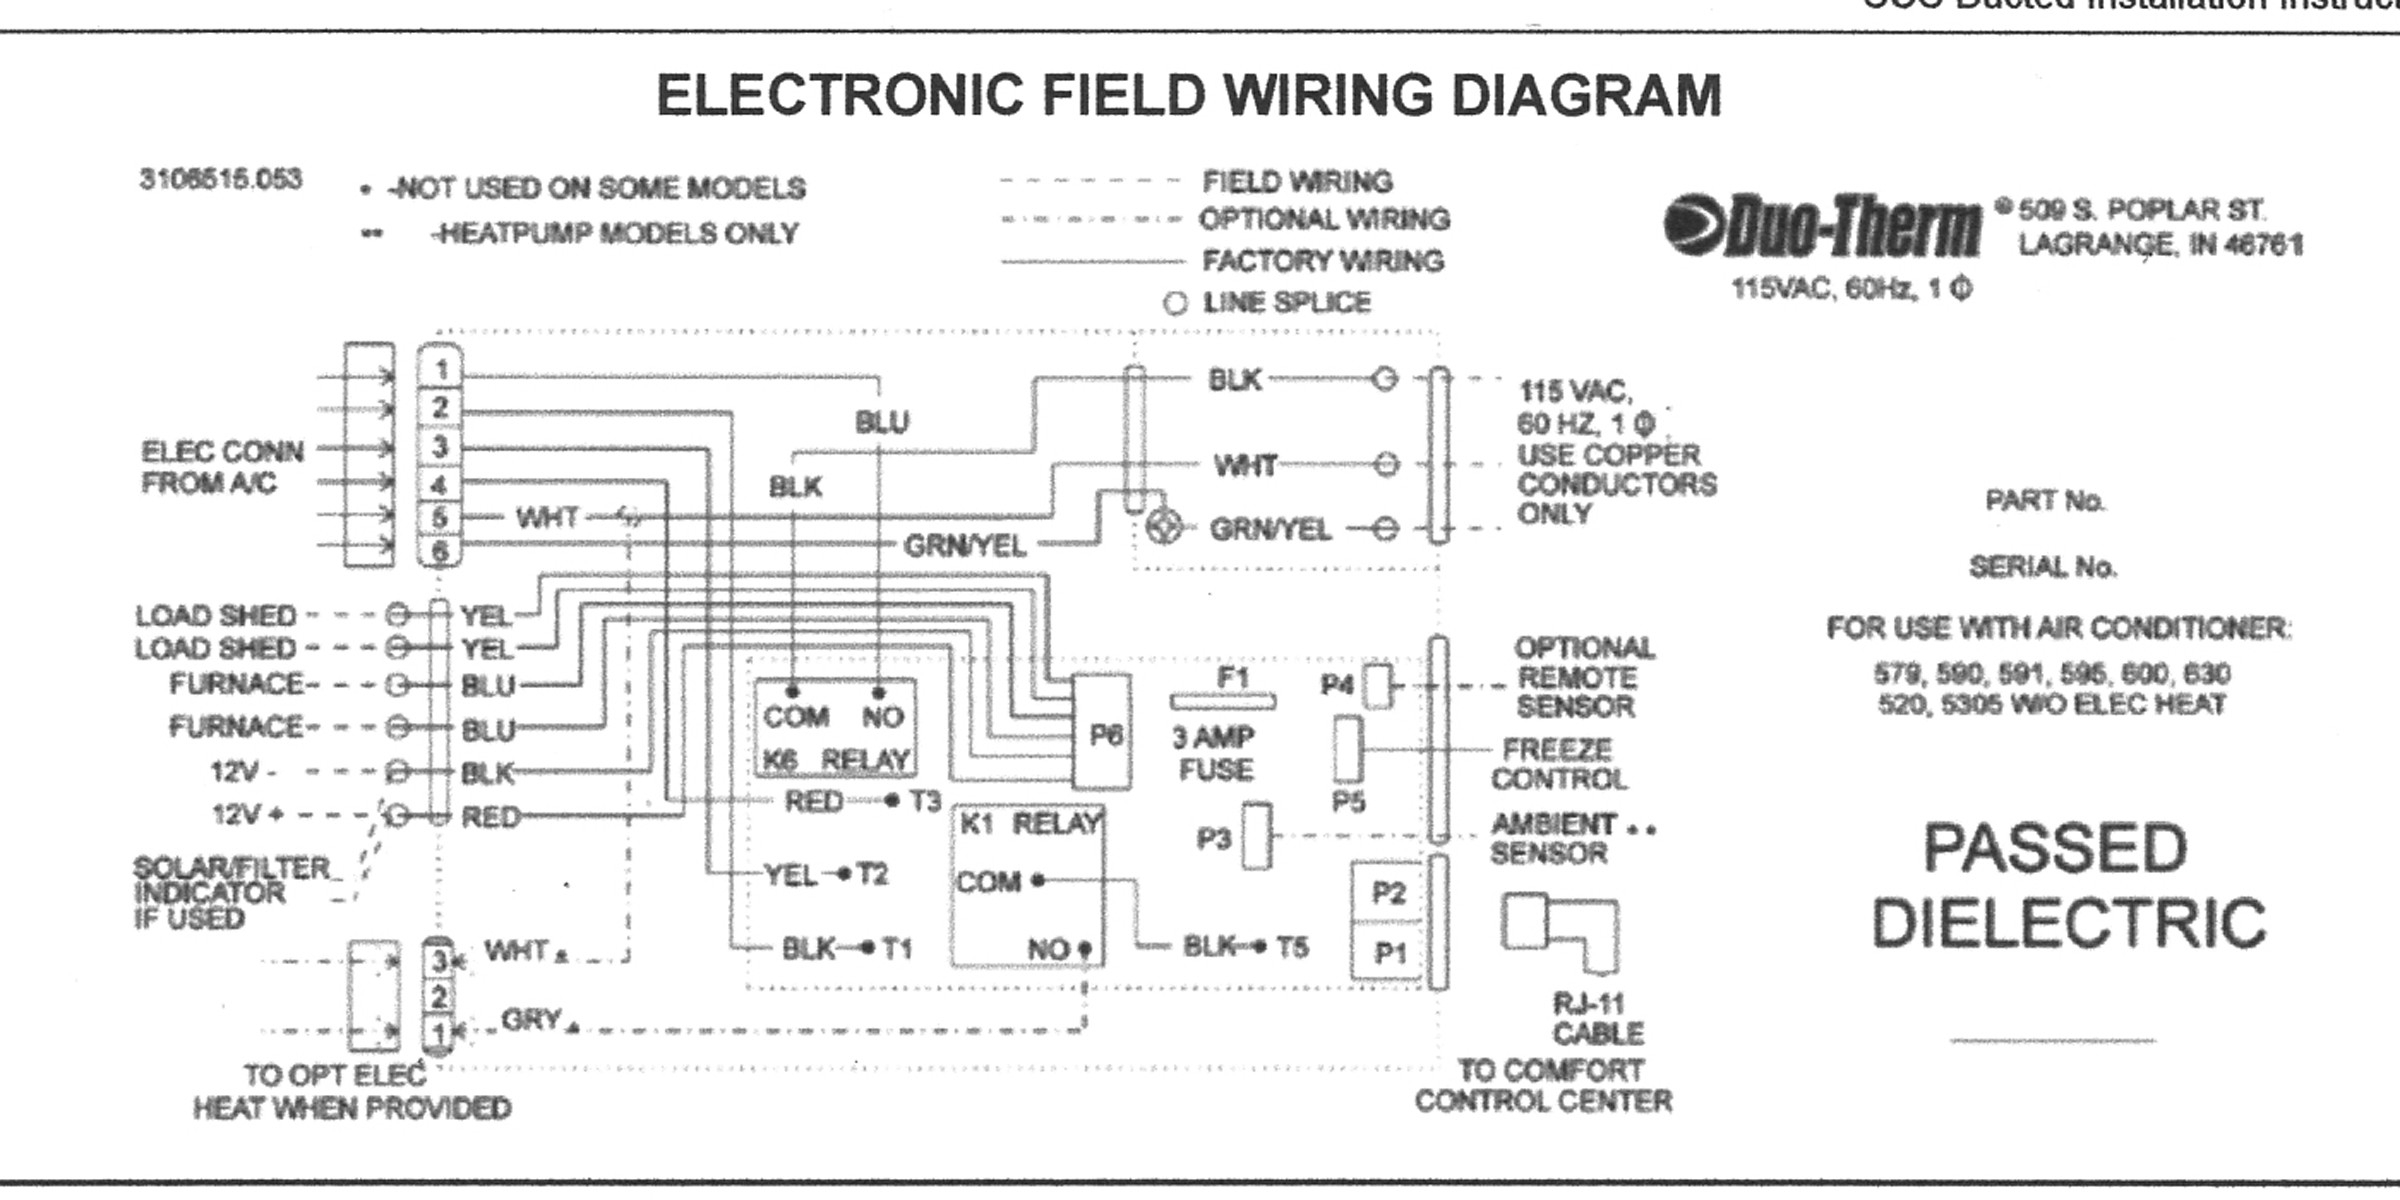 dometic thermostat wiring diagram Download-Wiring A Ac thermostat Diagram New Duo therm thermostat Wiring Diagram and Suburban Rv Furnace Wiring 17-b